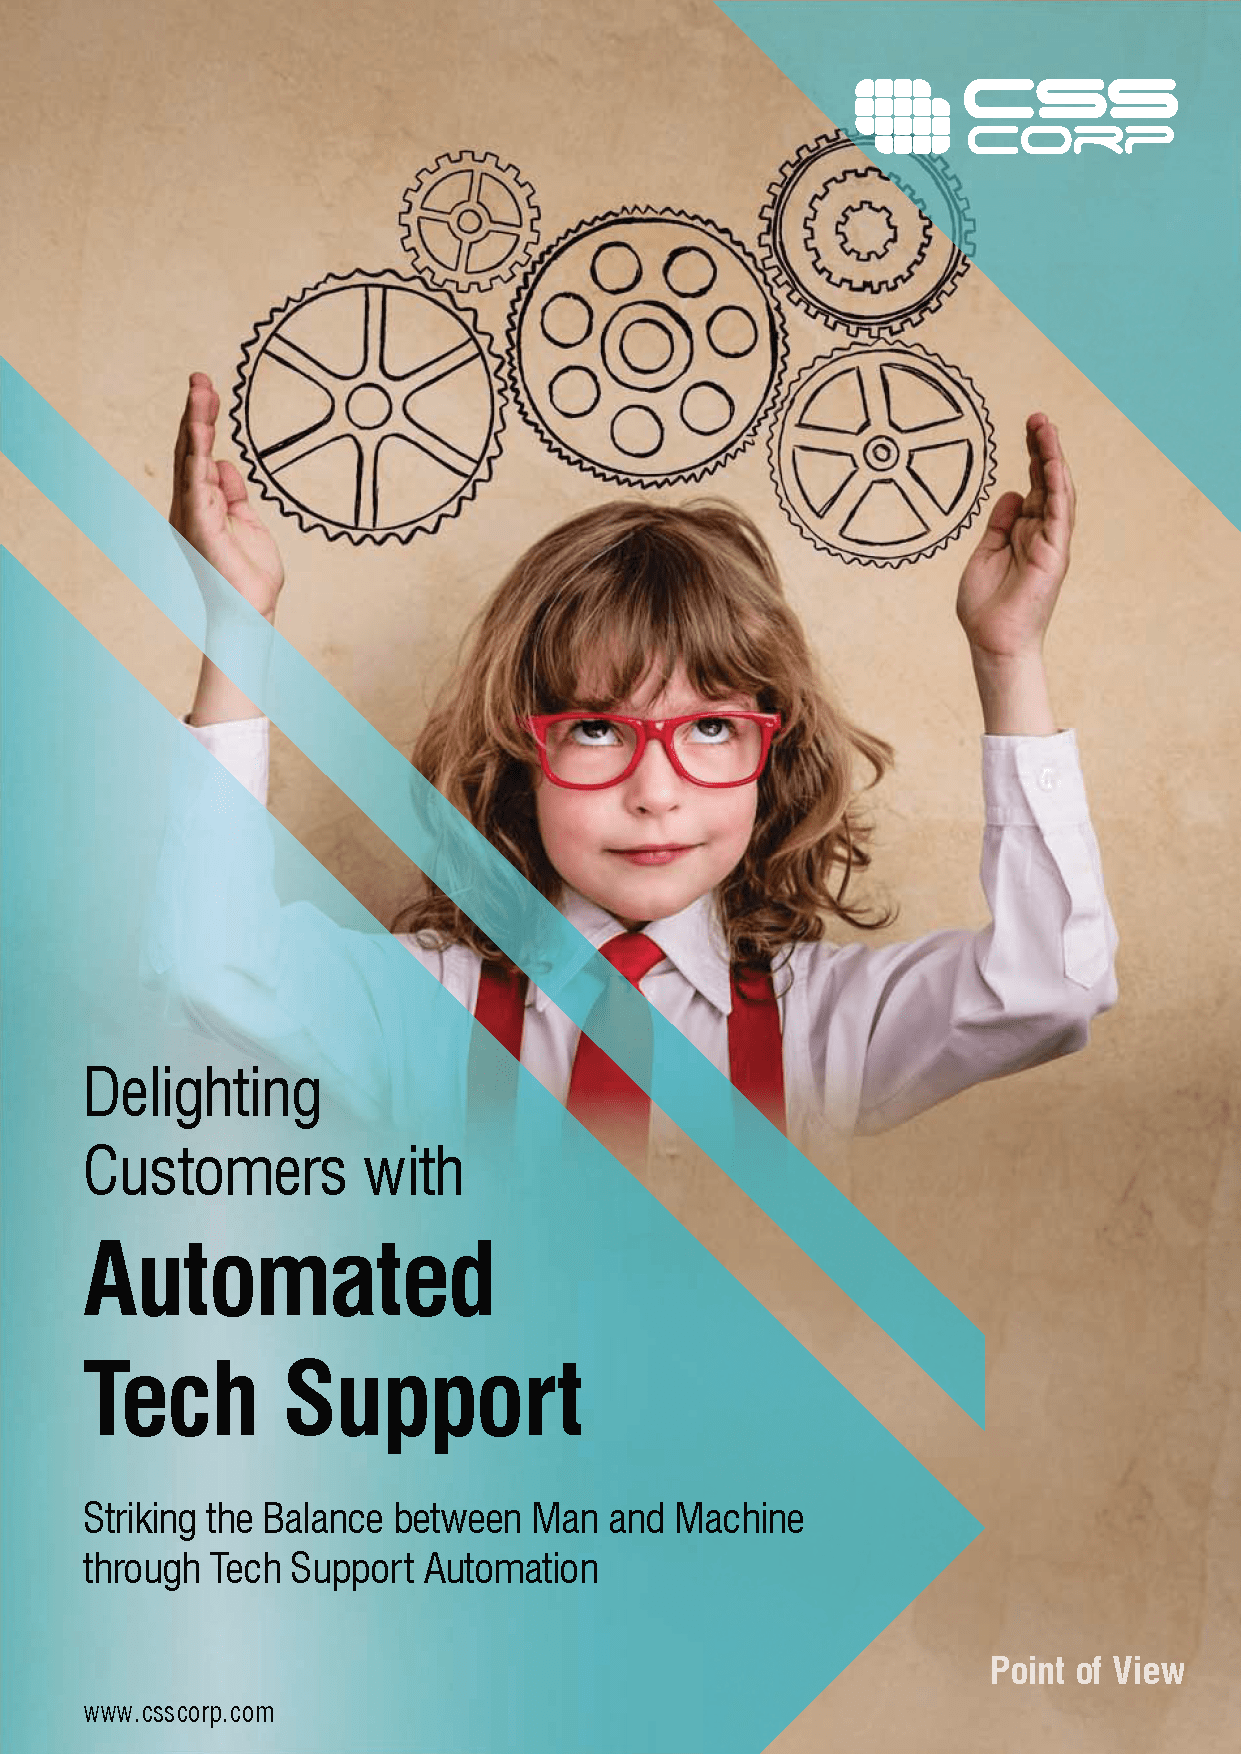 Delighting Customers with Automated Tech Support